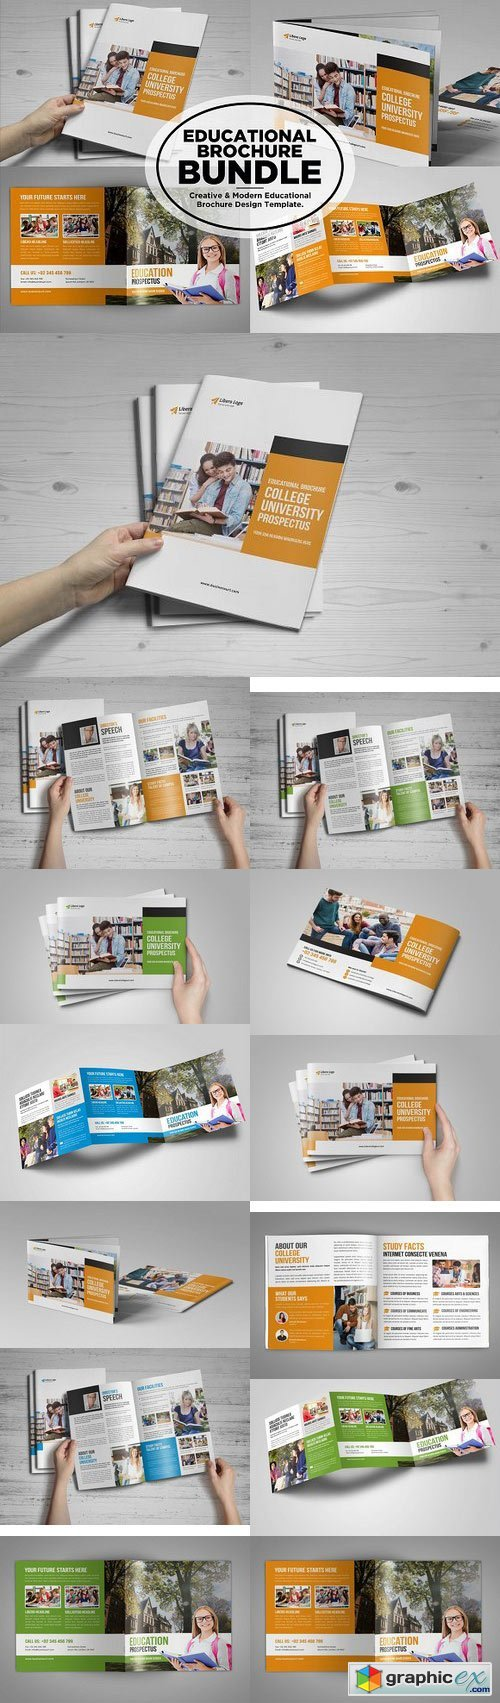 College University Prospectus Bundle